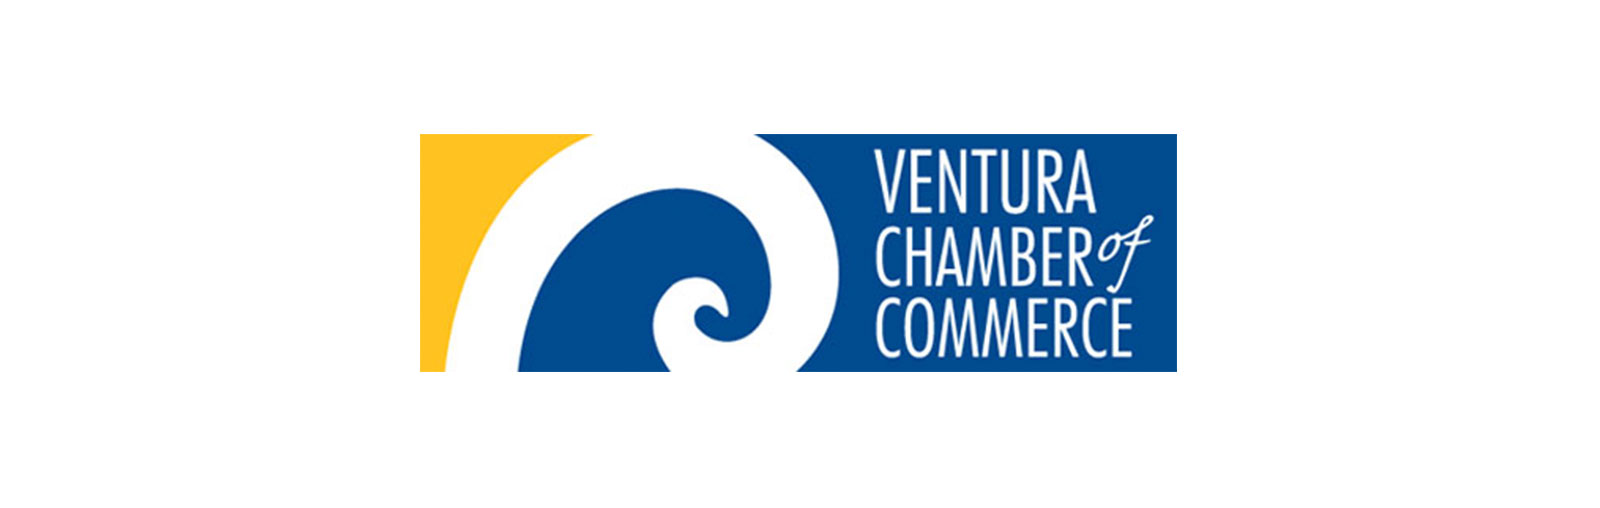 partners-logo-Ventura-Chamber-of-Commerce